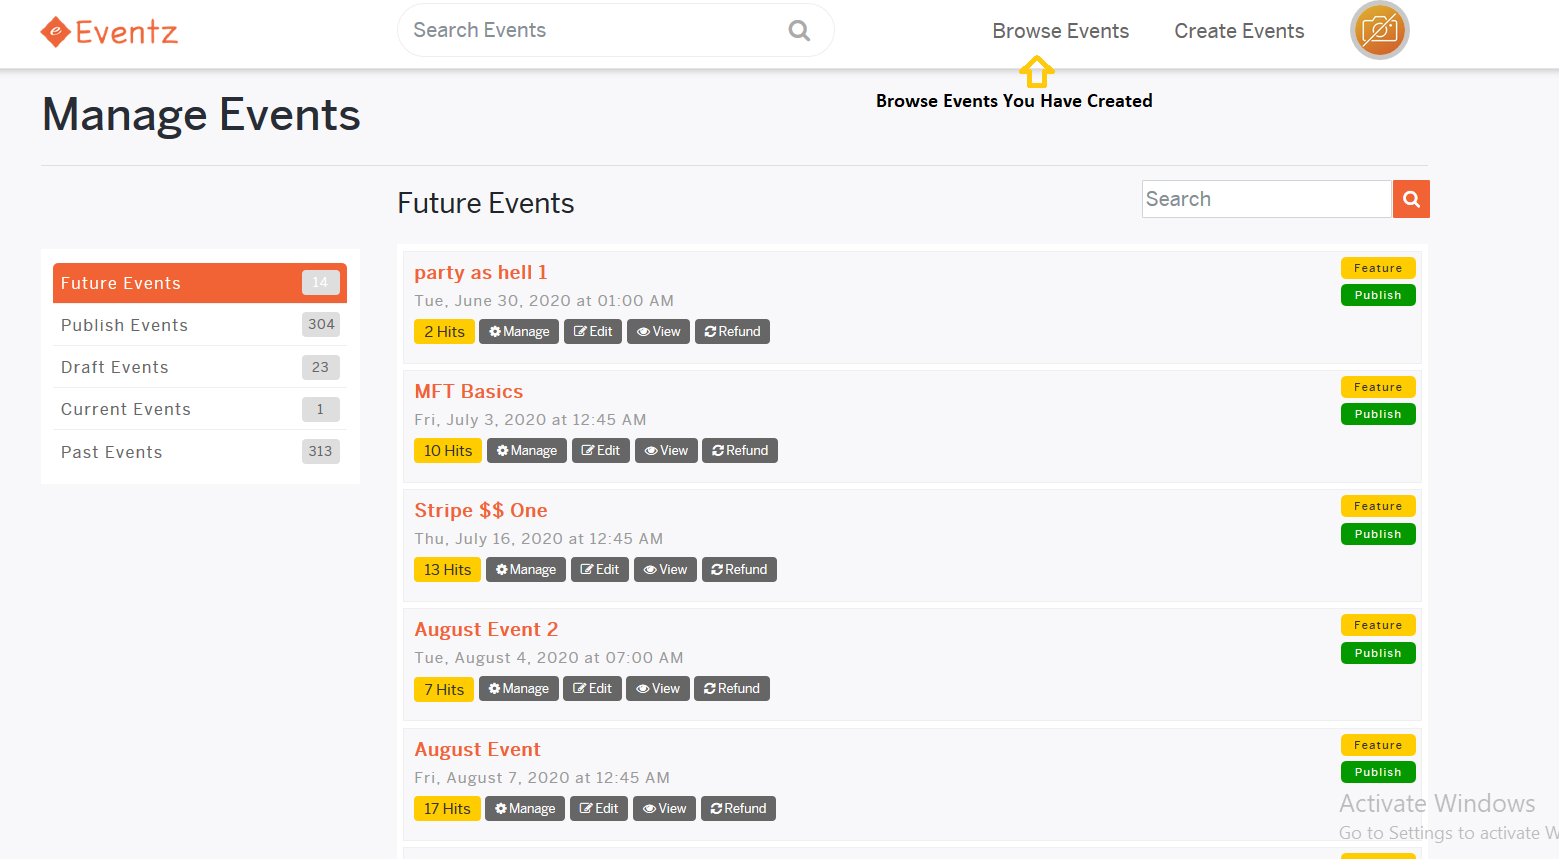 Manage Events Section